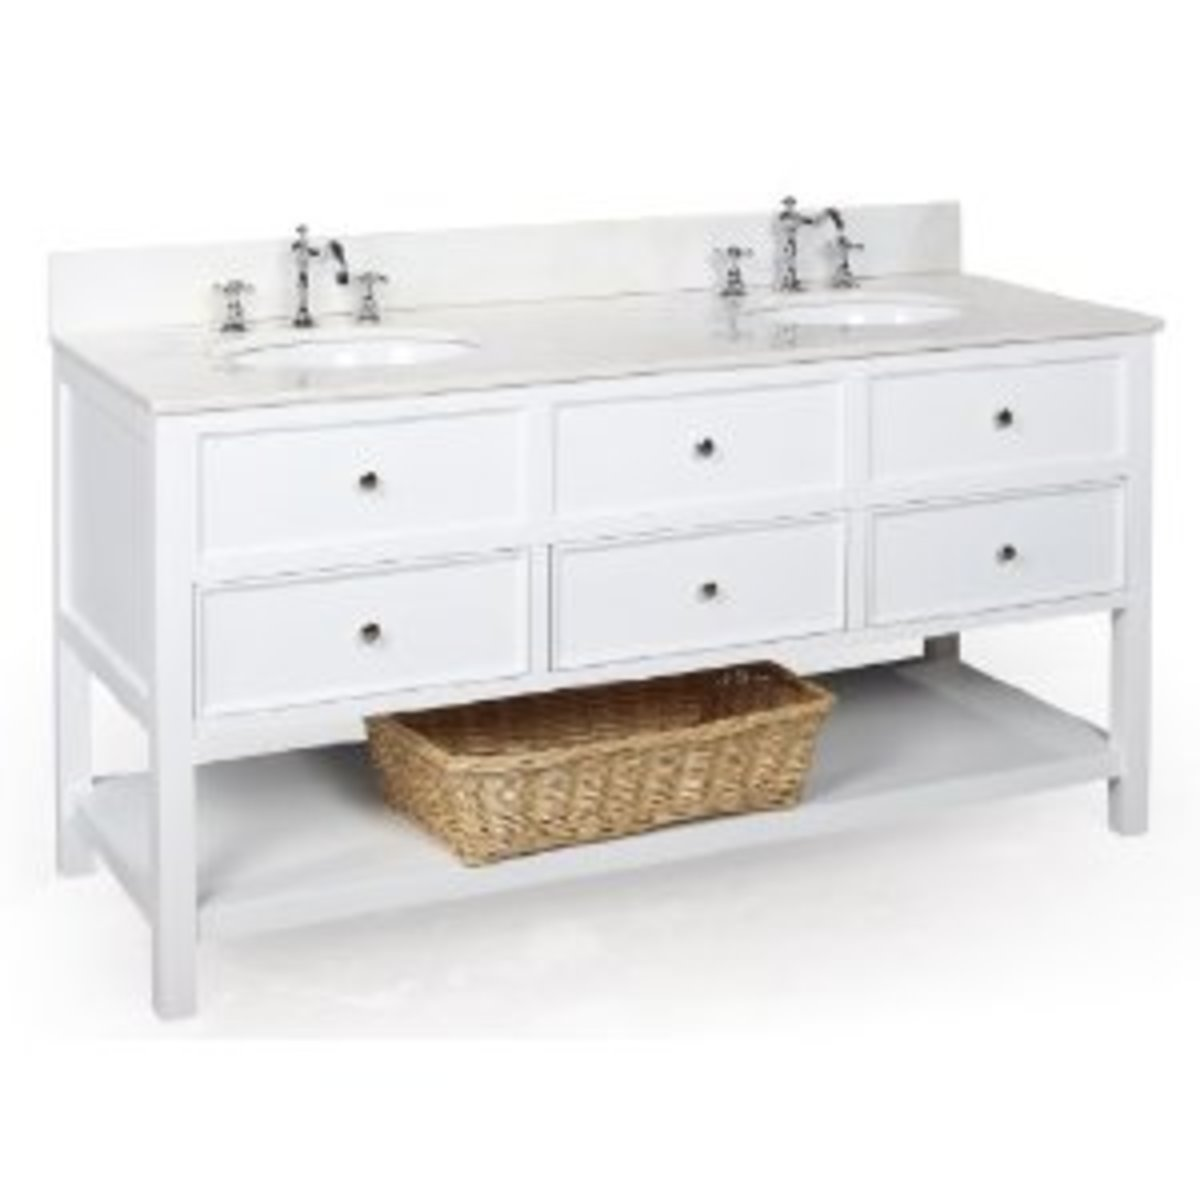 A vanity with PB looks and a great price too! See why this vanity is a favorite on Houzz.com!